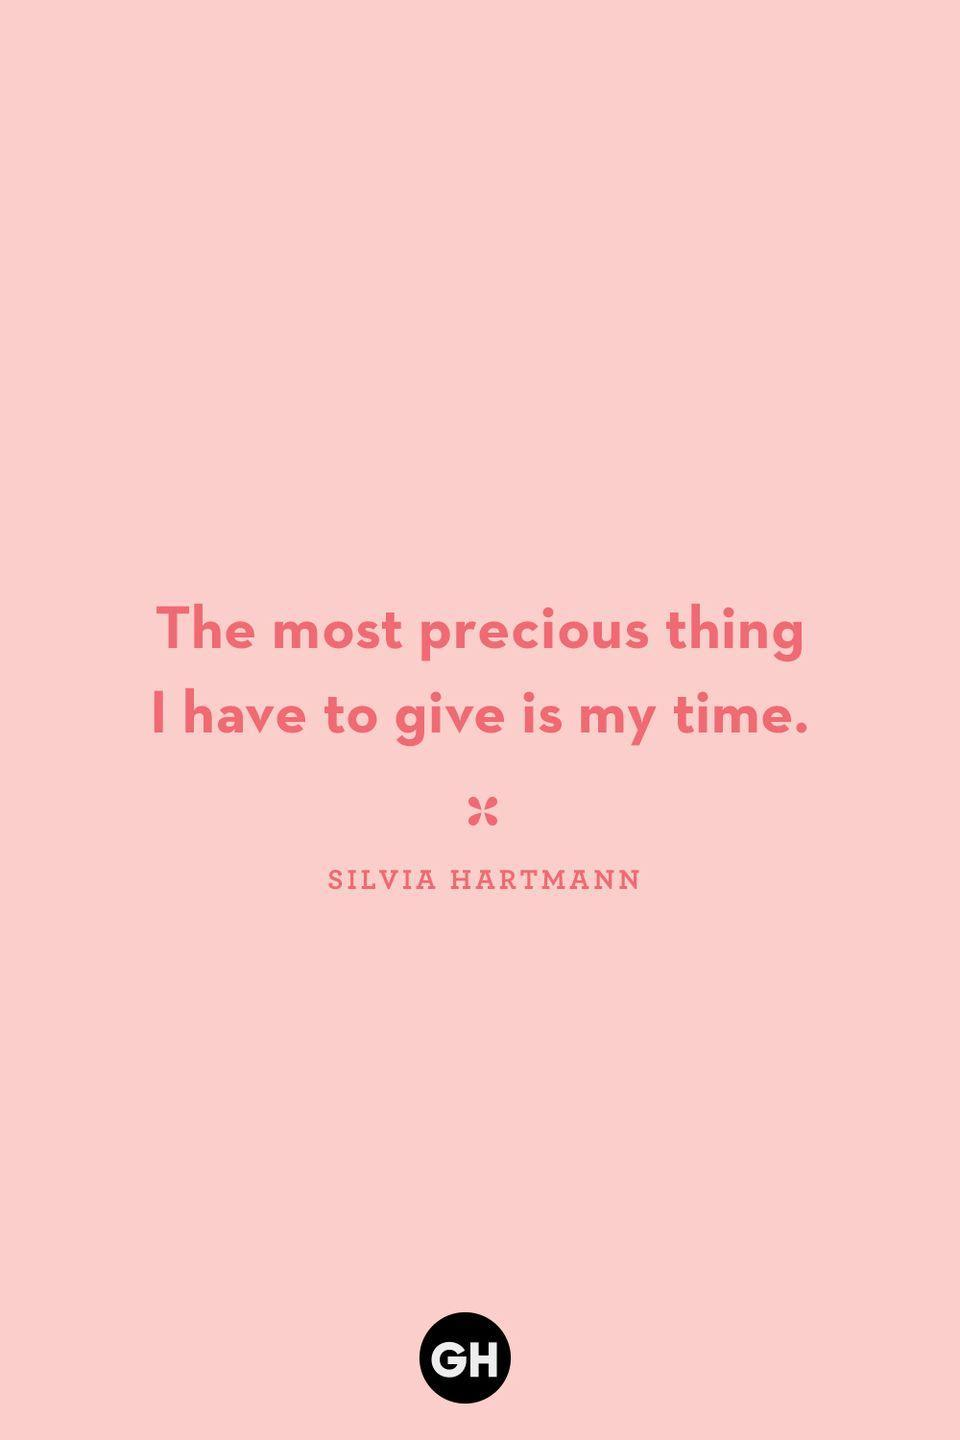 <p>The most precious thing I have to give is my time.</p>